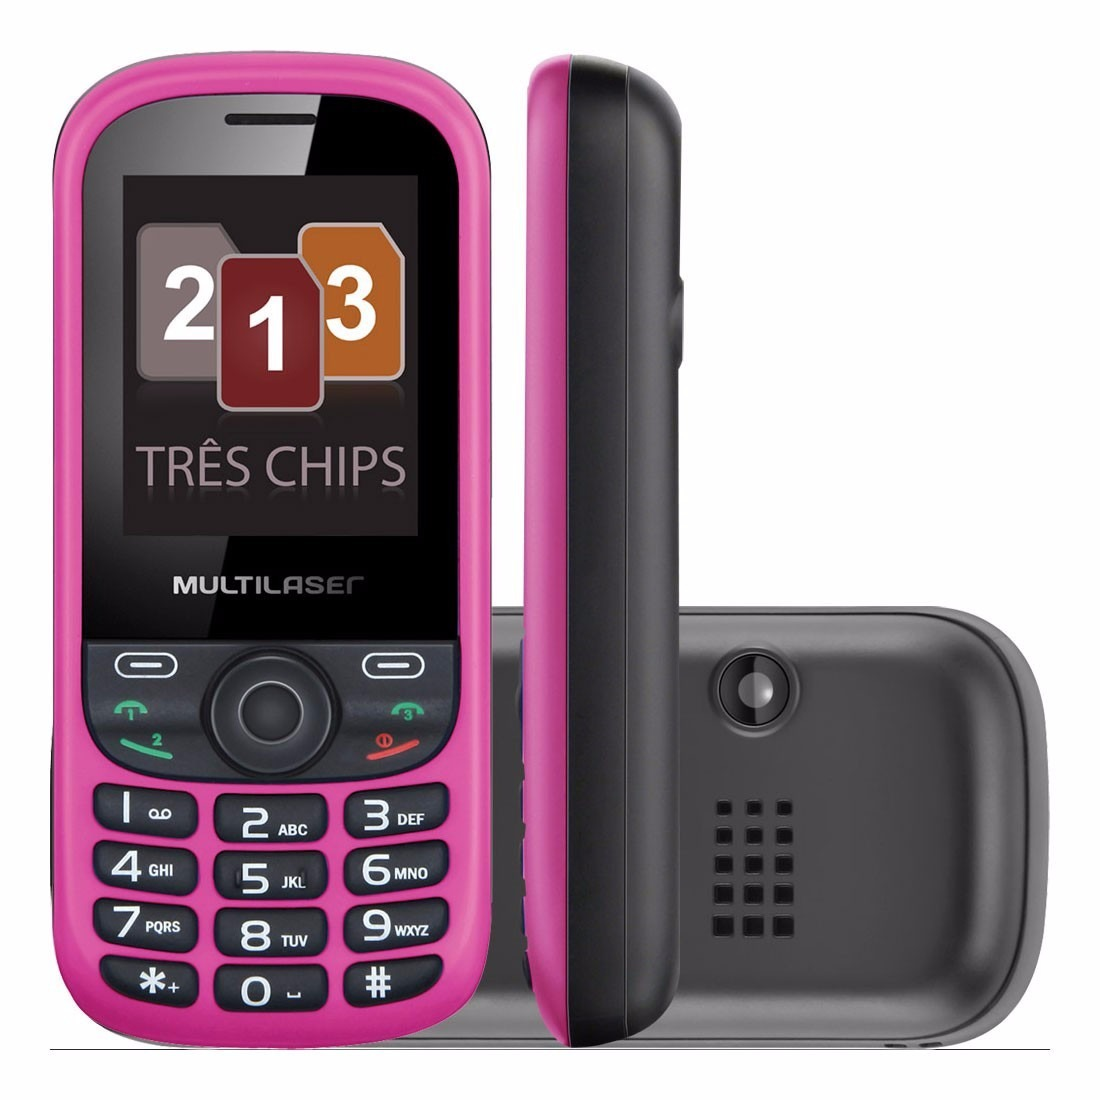 Celular UP Tri Chip Rosa/Preto Câmera Rádio MP3 Player Multilaser P3275